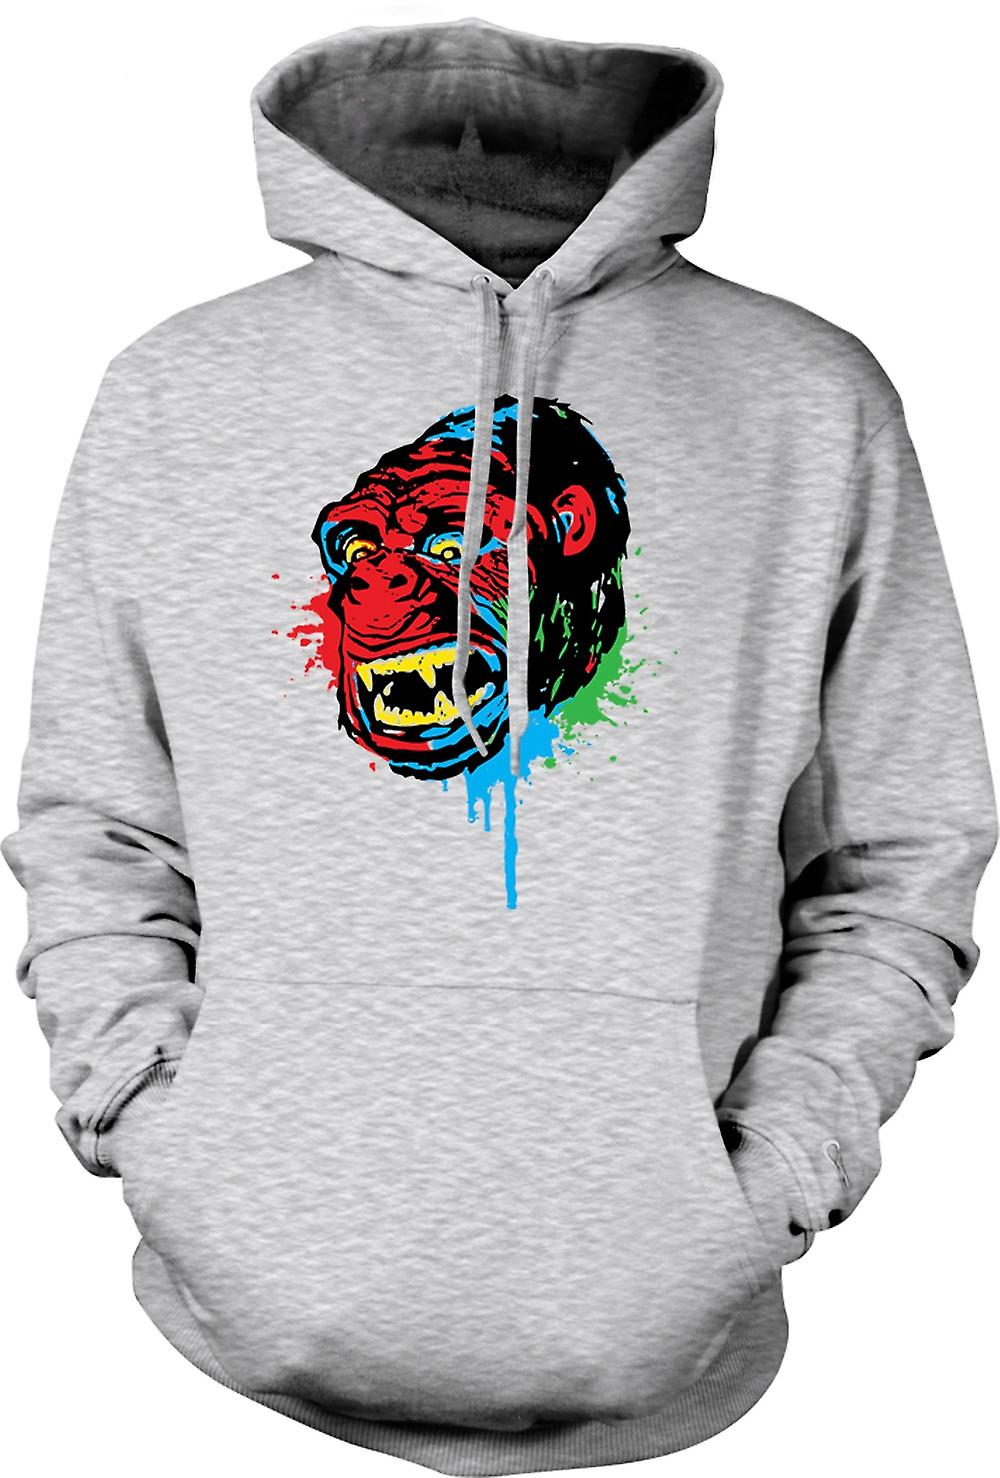 Mens Hoodie - Pop Art - Ape Gorilla - Cool Design